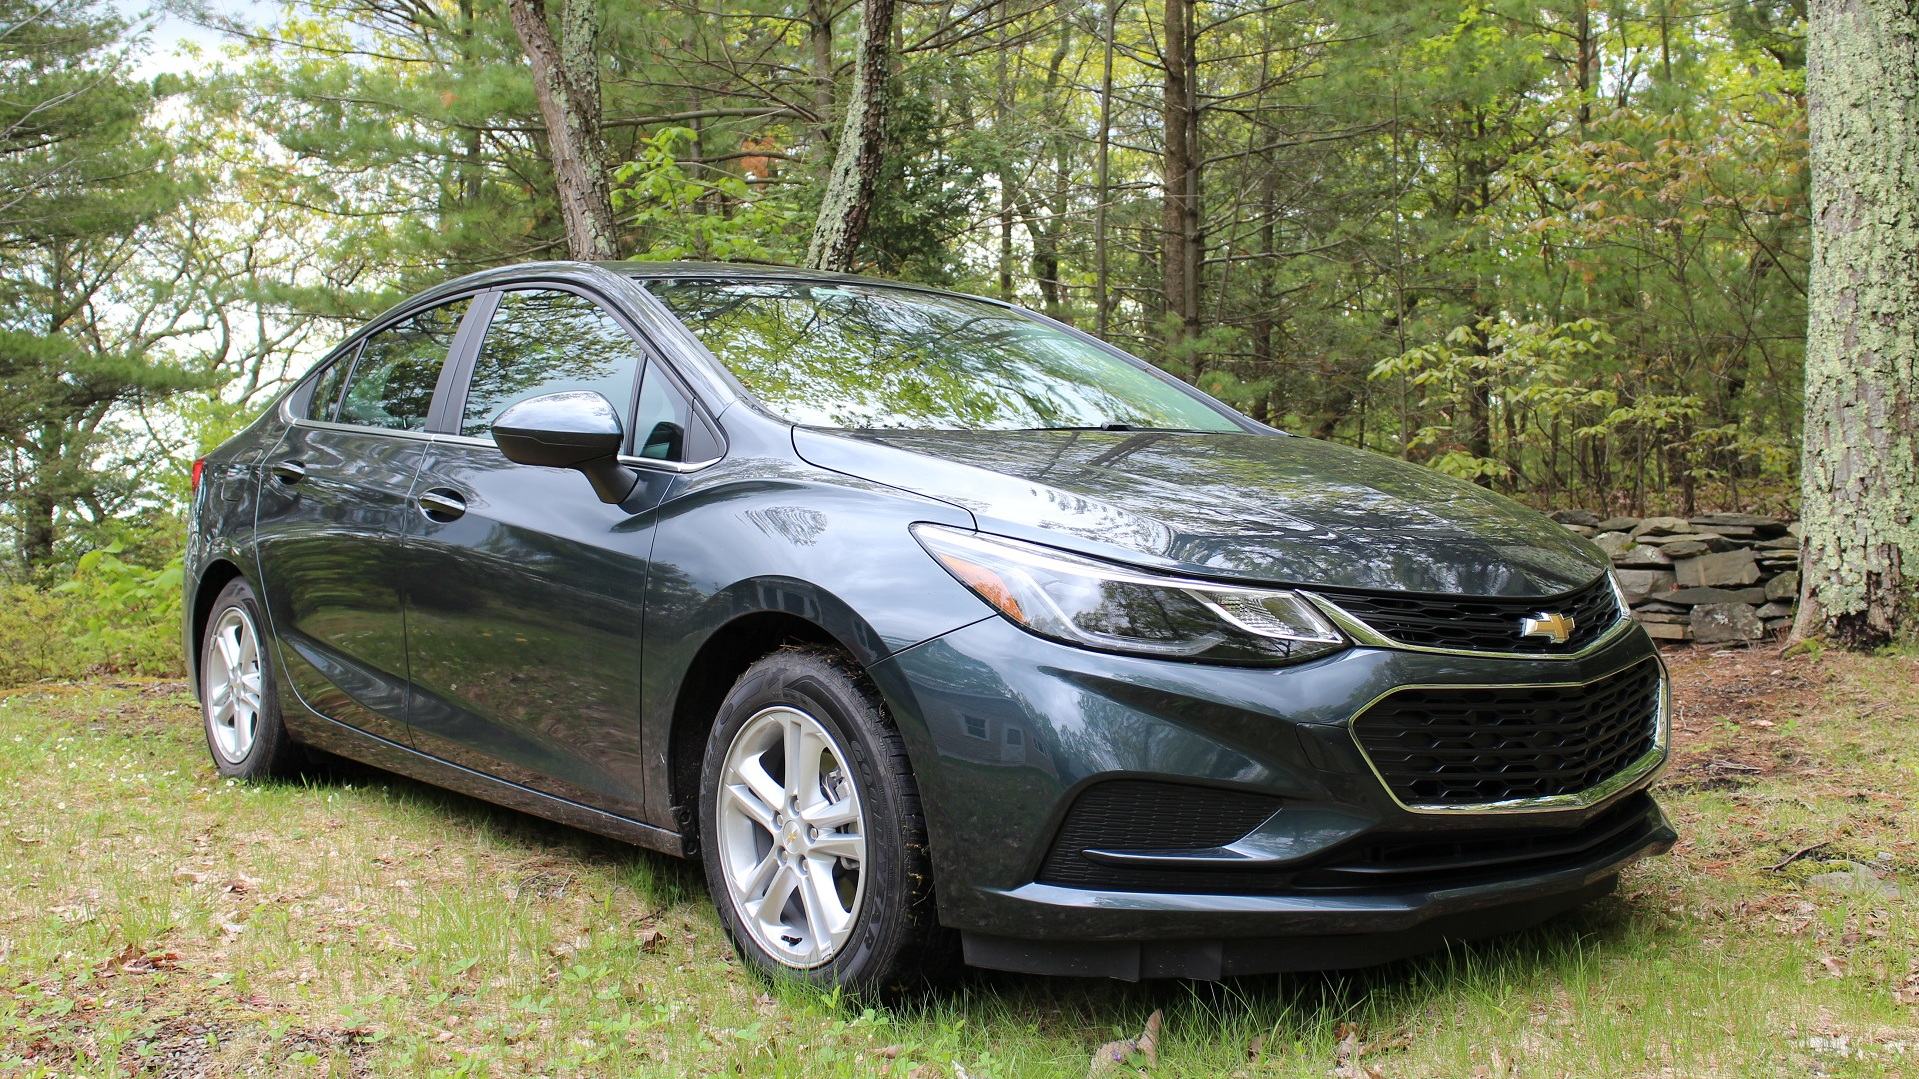 2017 Chevrolet Cruze Diesel: fuel economy review for